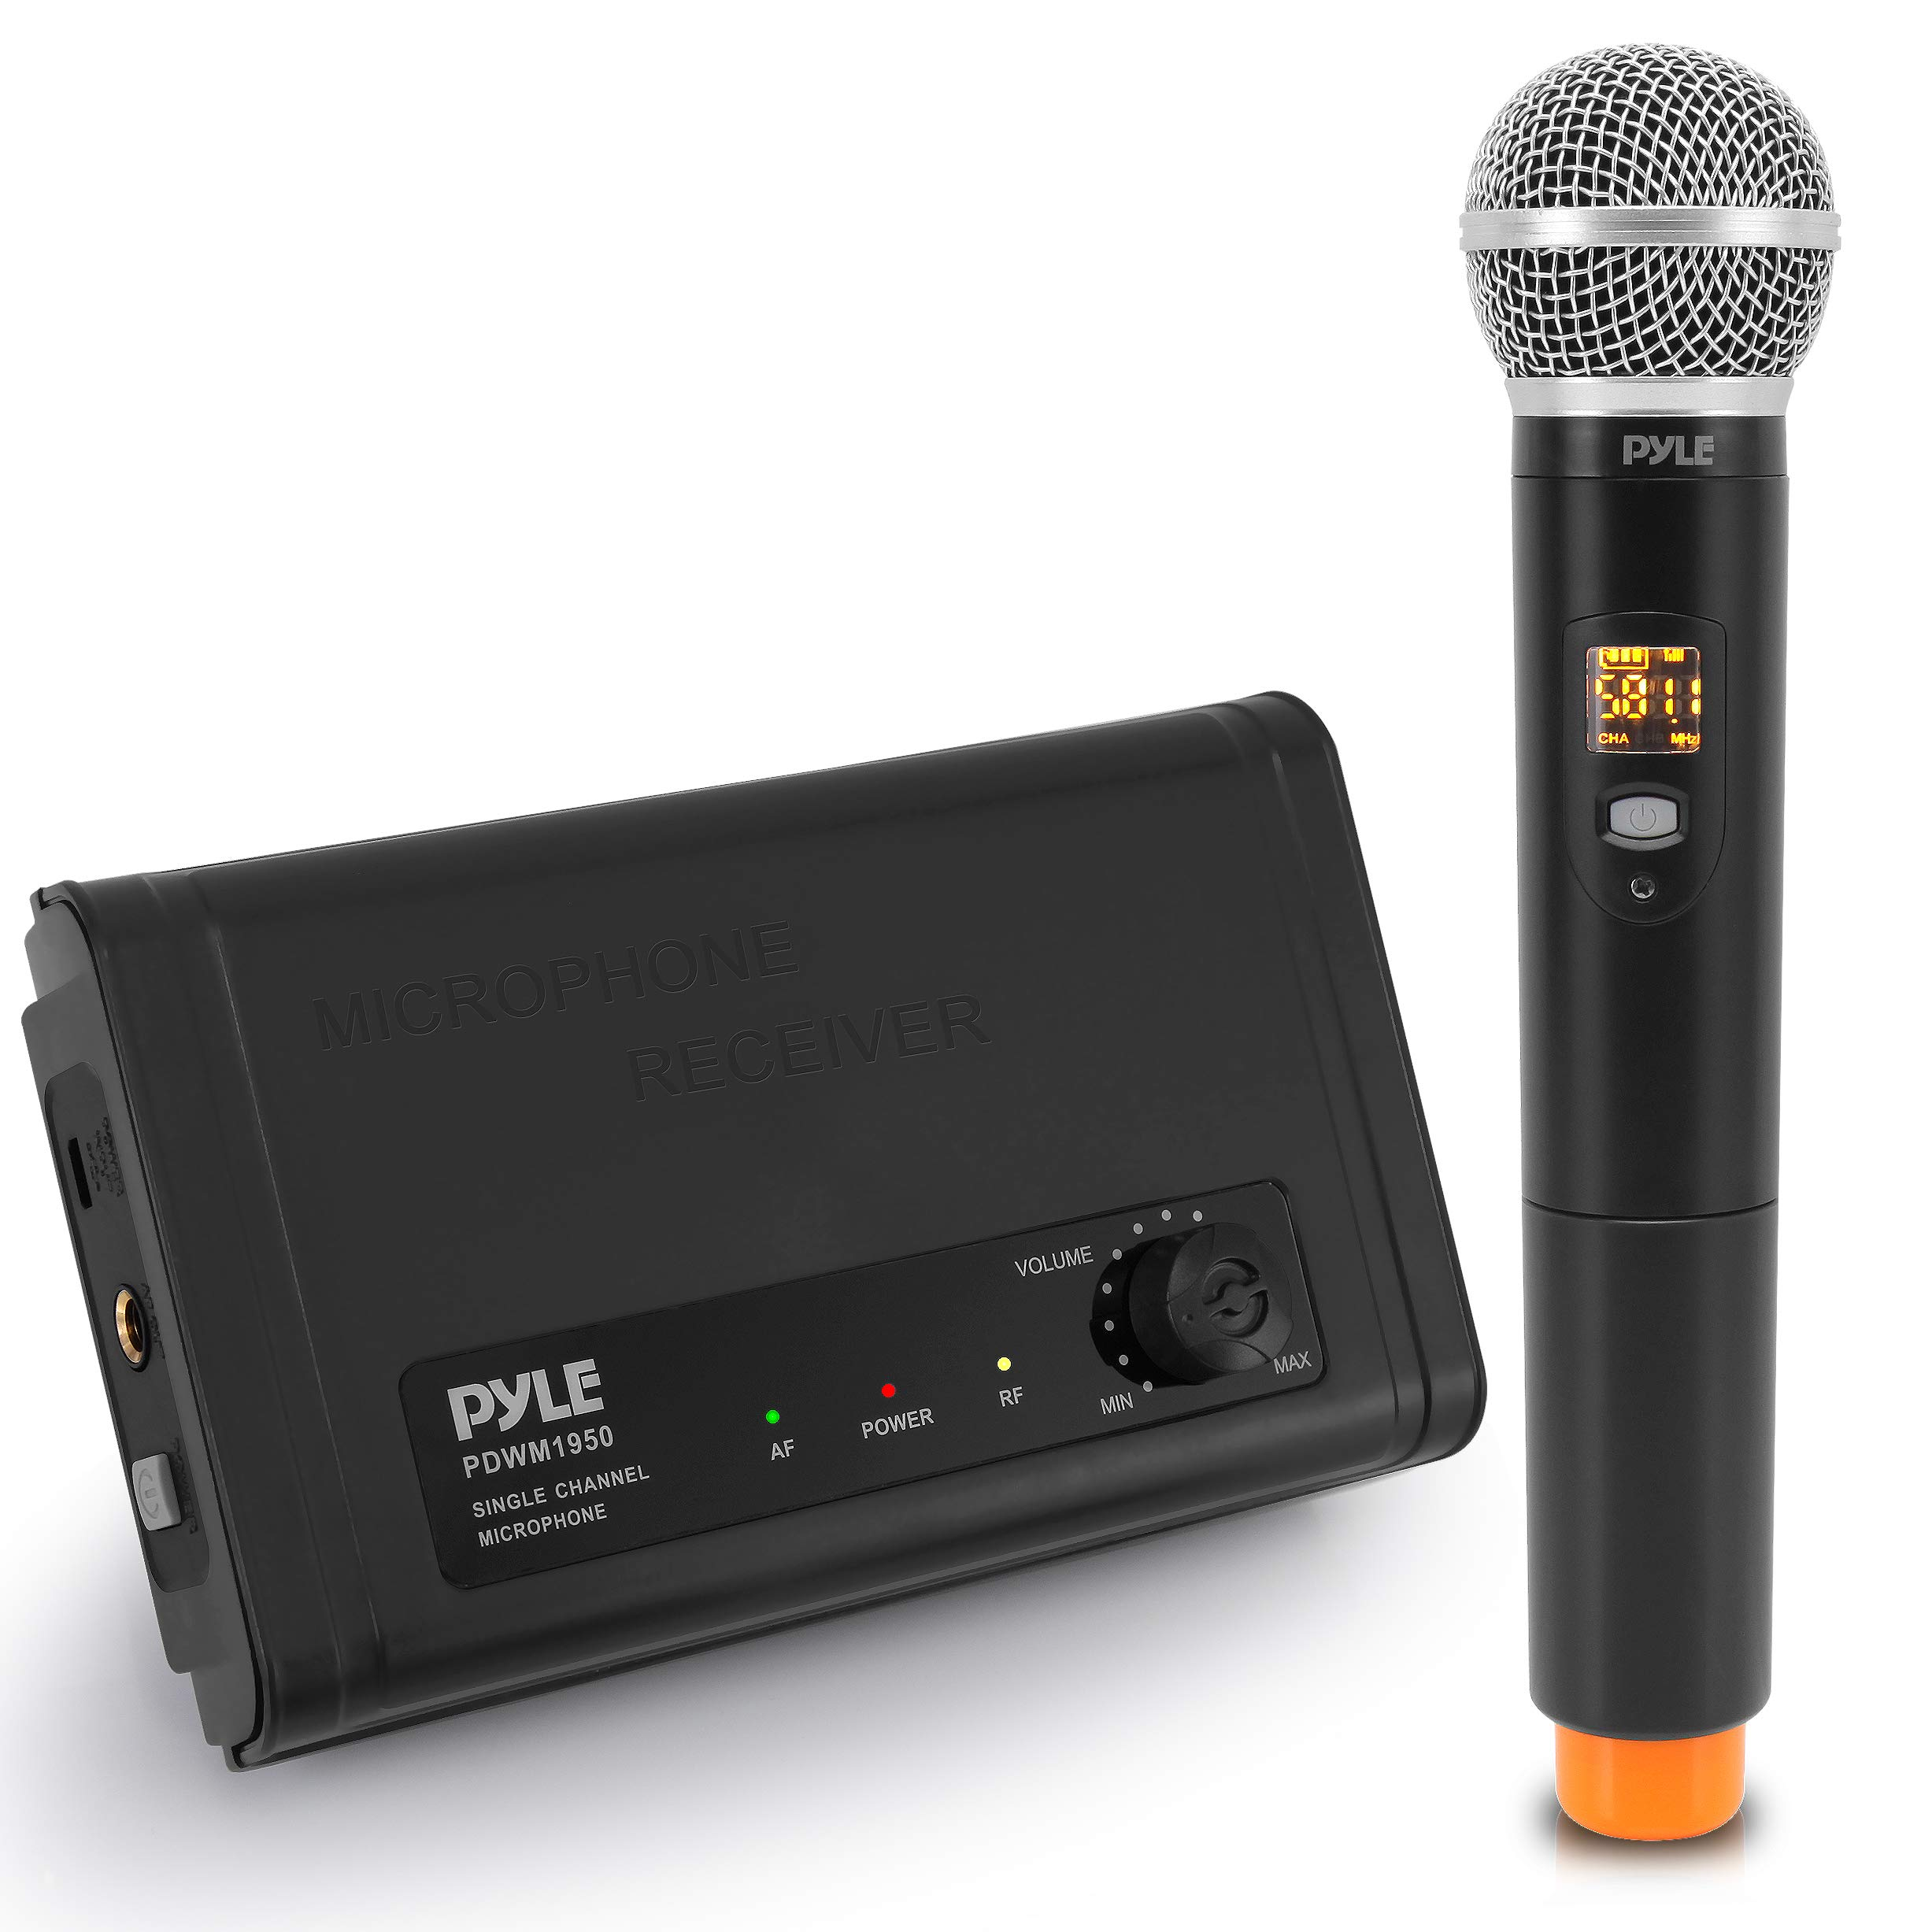 Compact UHF Wireless Microphone System - Pro Portable Single Channel Desktop Digital Mic Receiver Set w/ 1 Handheld Mic, Receiver Base, USB Cable, Battery, for Home, PA, Karaoke, DJ - Pyle PDWM1950 by Pyle